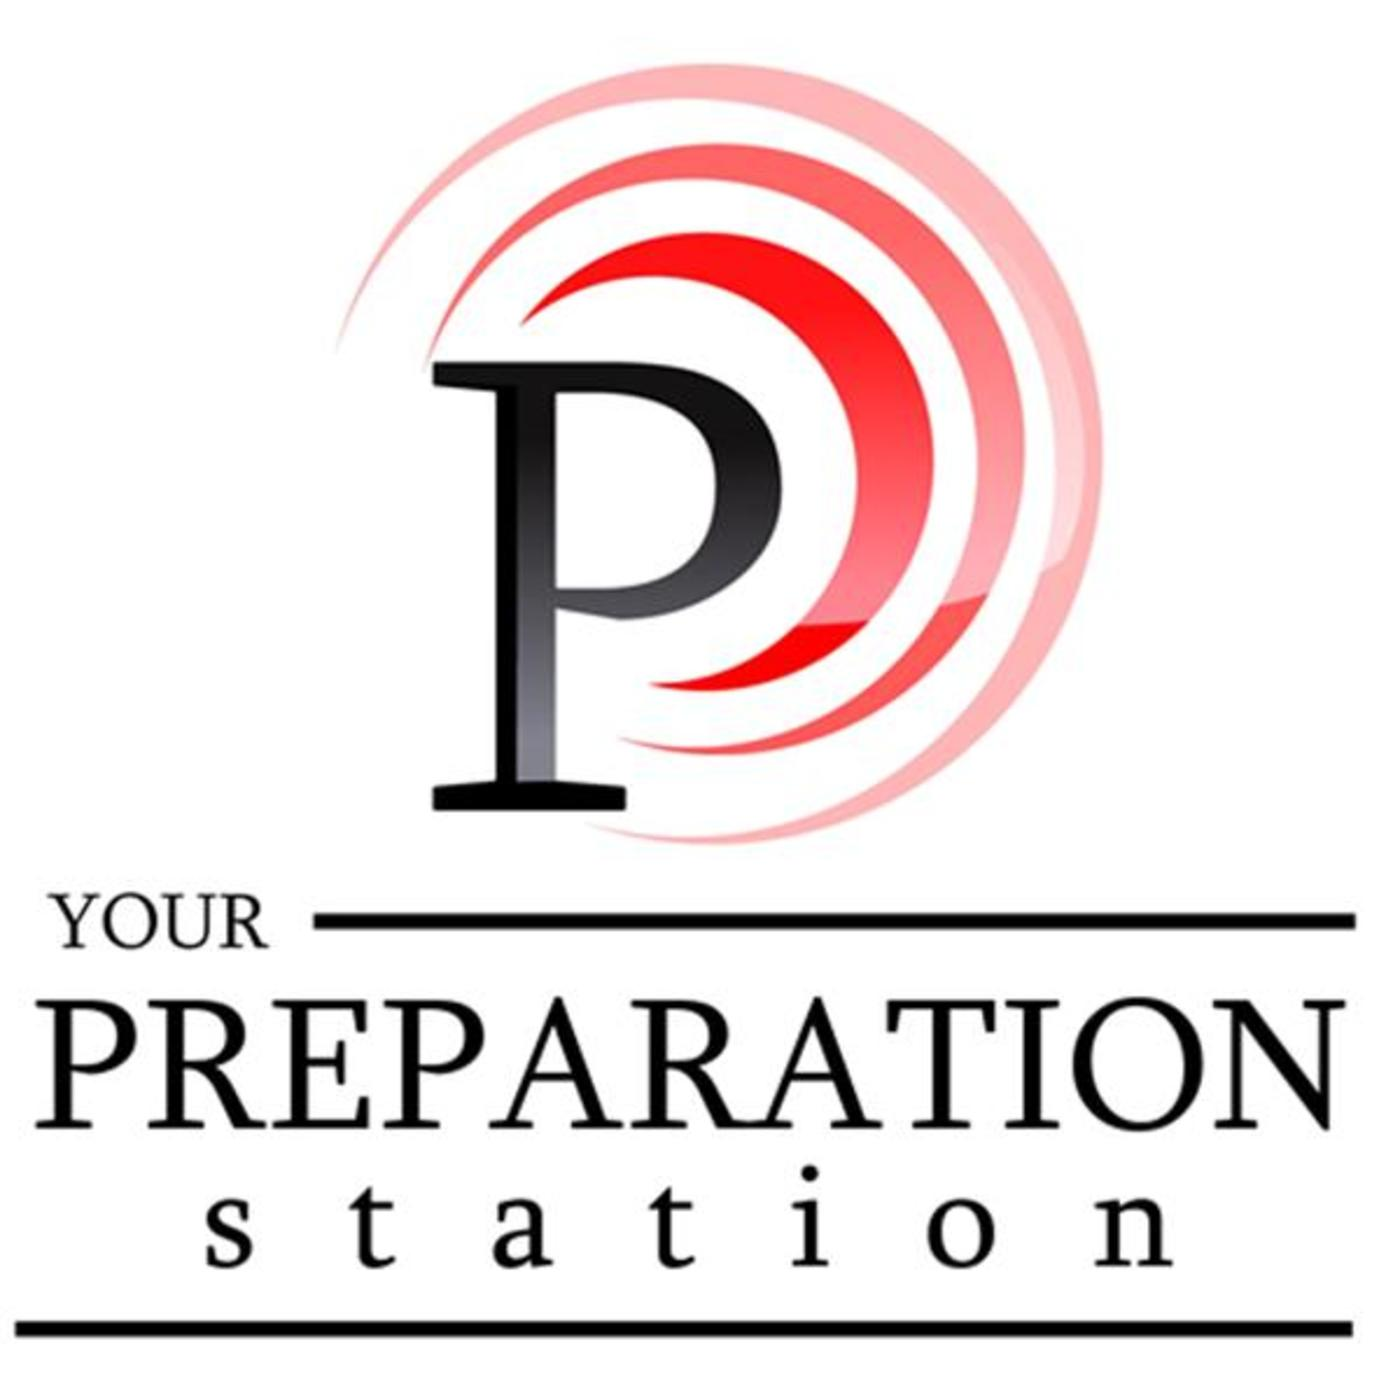 Your Preparation Station